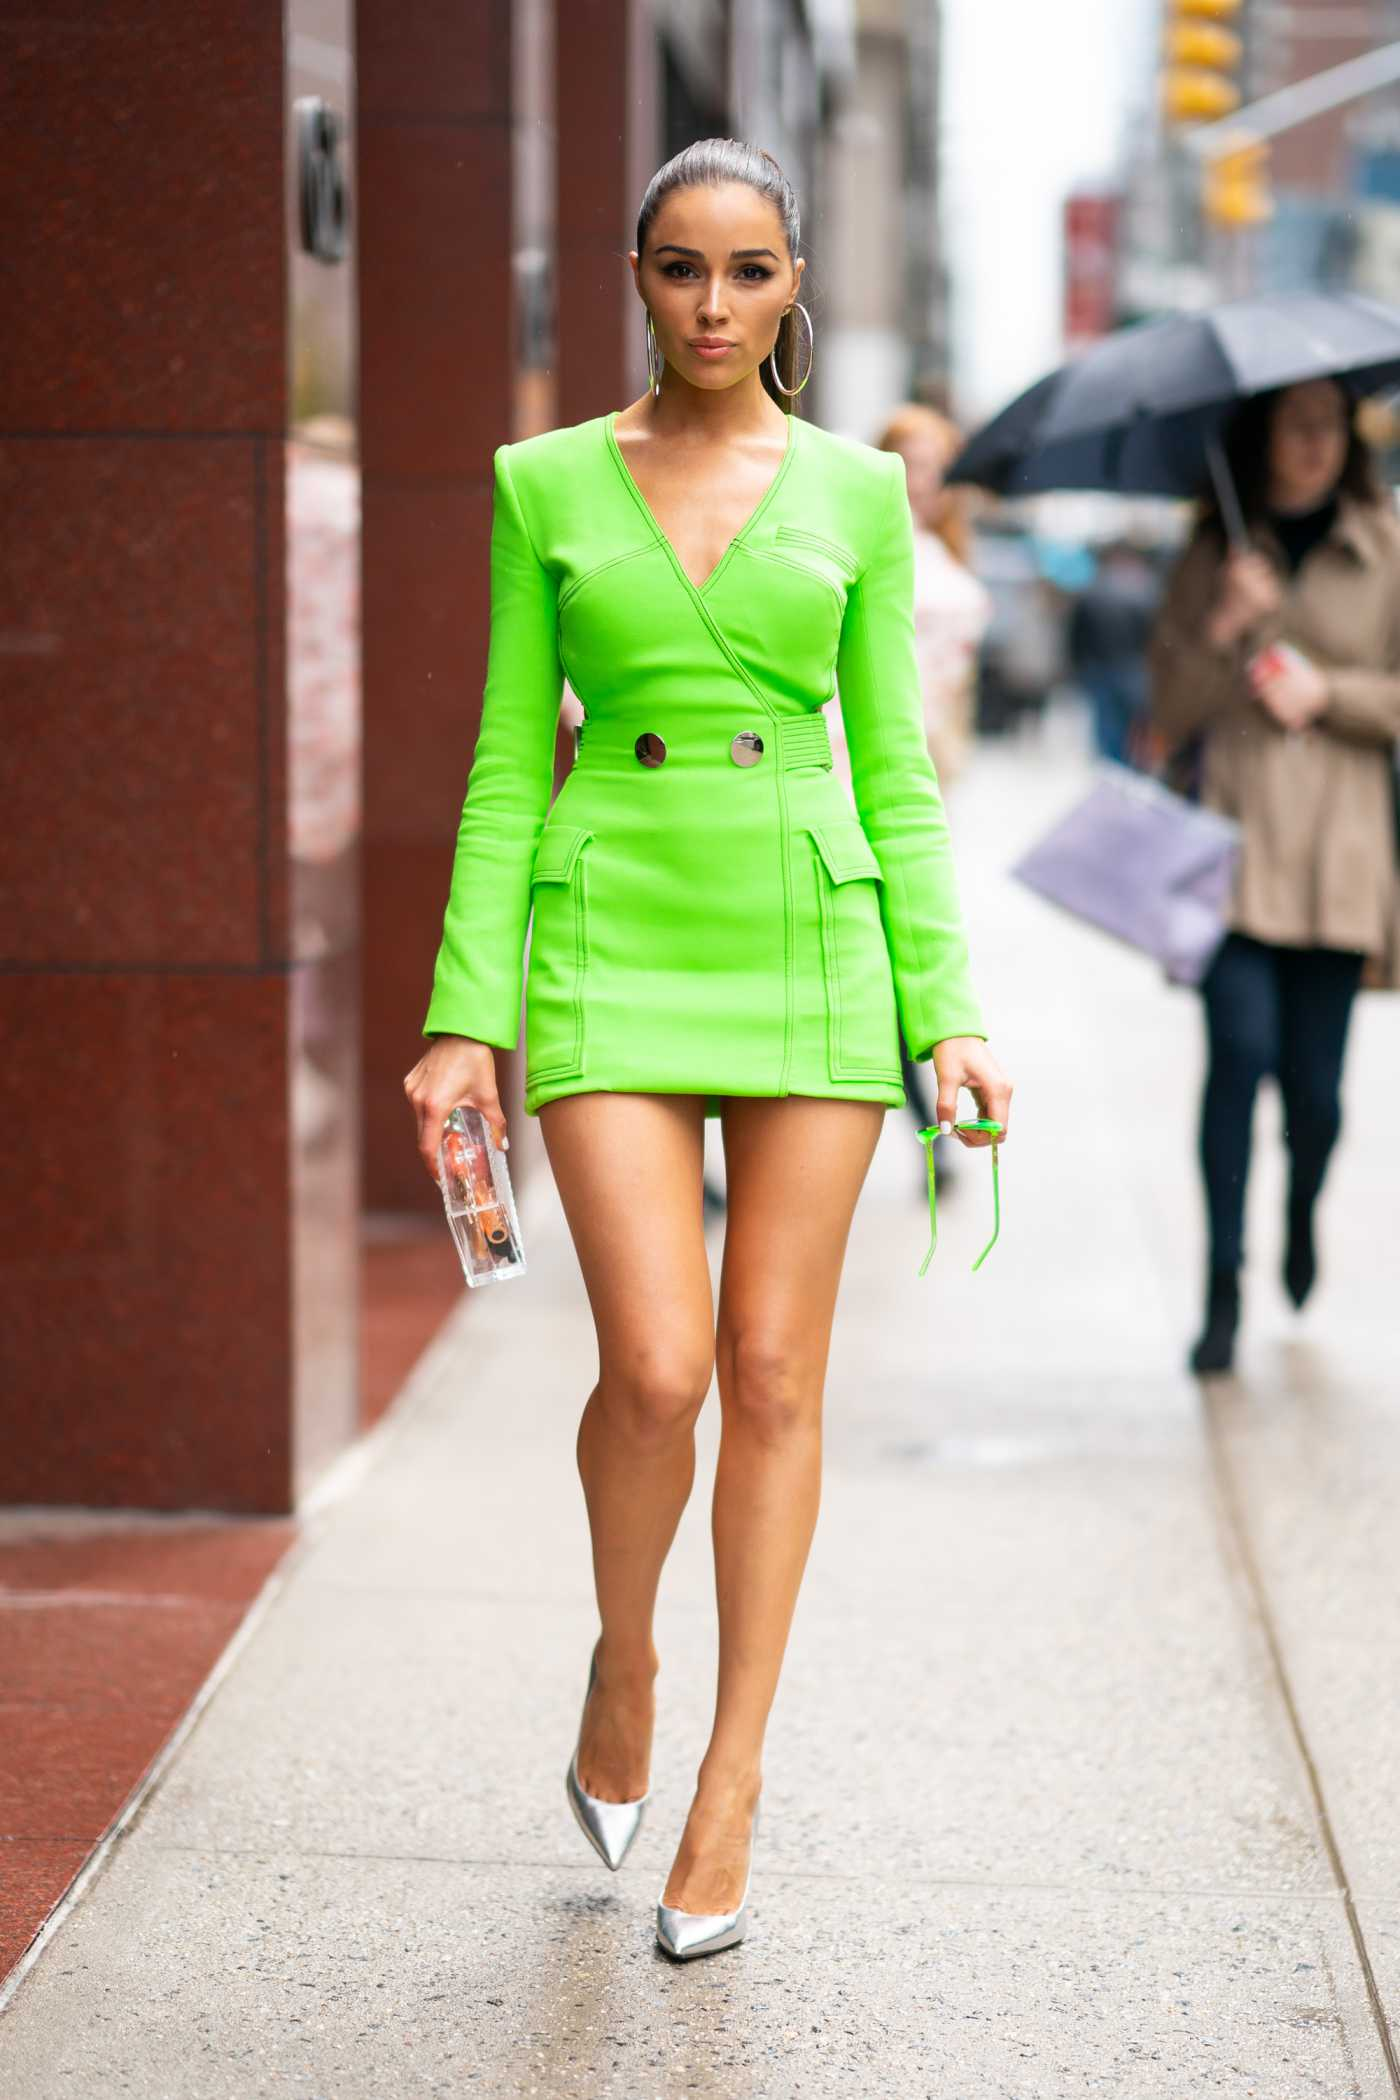 Olivia Culpo in a Neon Green Dress Arrives at Magic Hour Rooftop Bar in New York City 04/26/2019